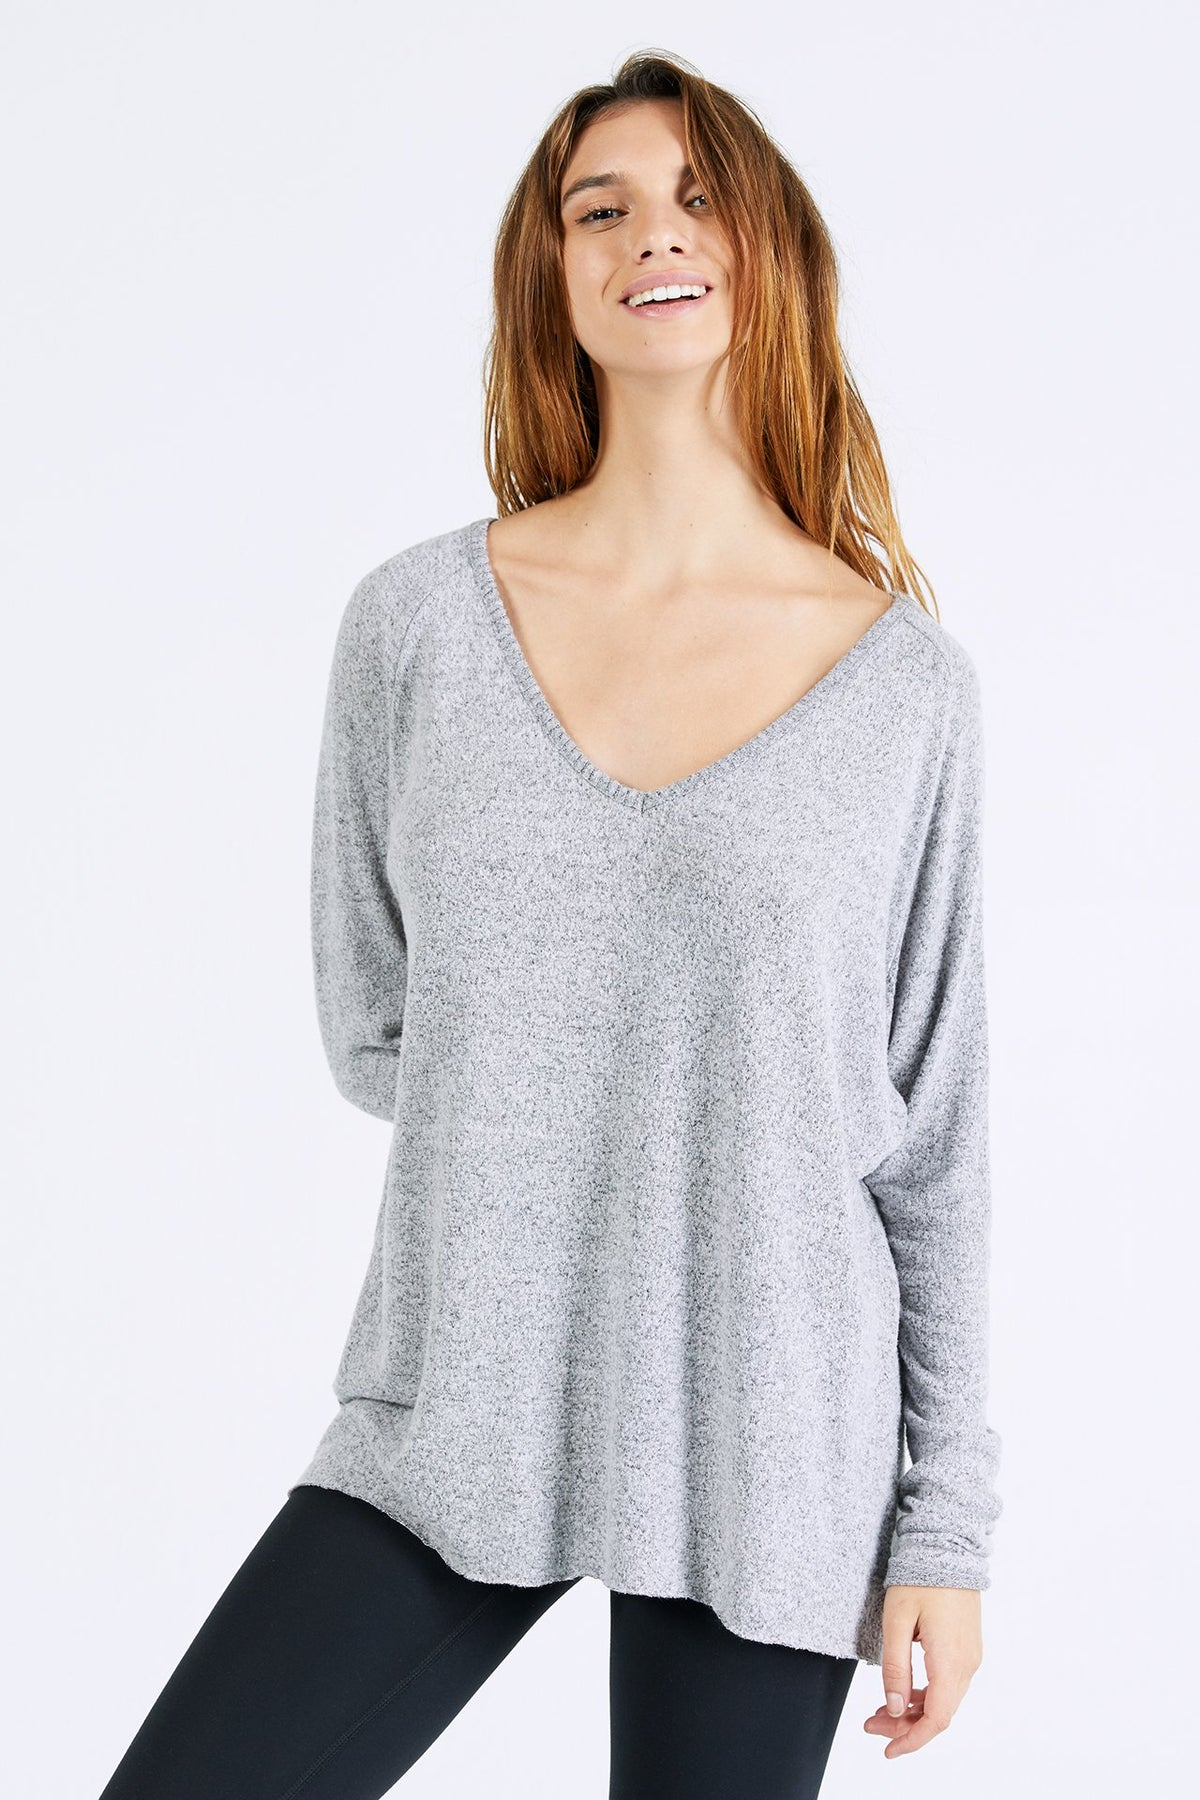 JOAH BROWN For Keeps V Neck- Salt & Pepper Hacci